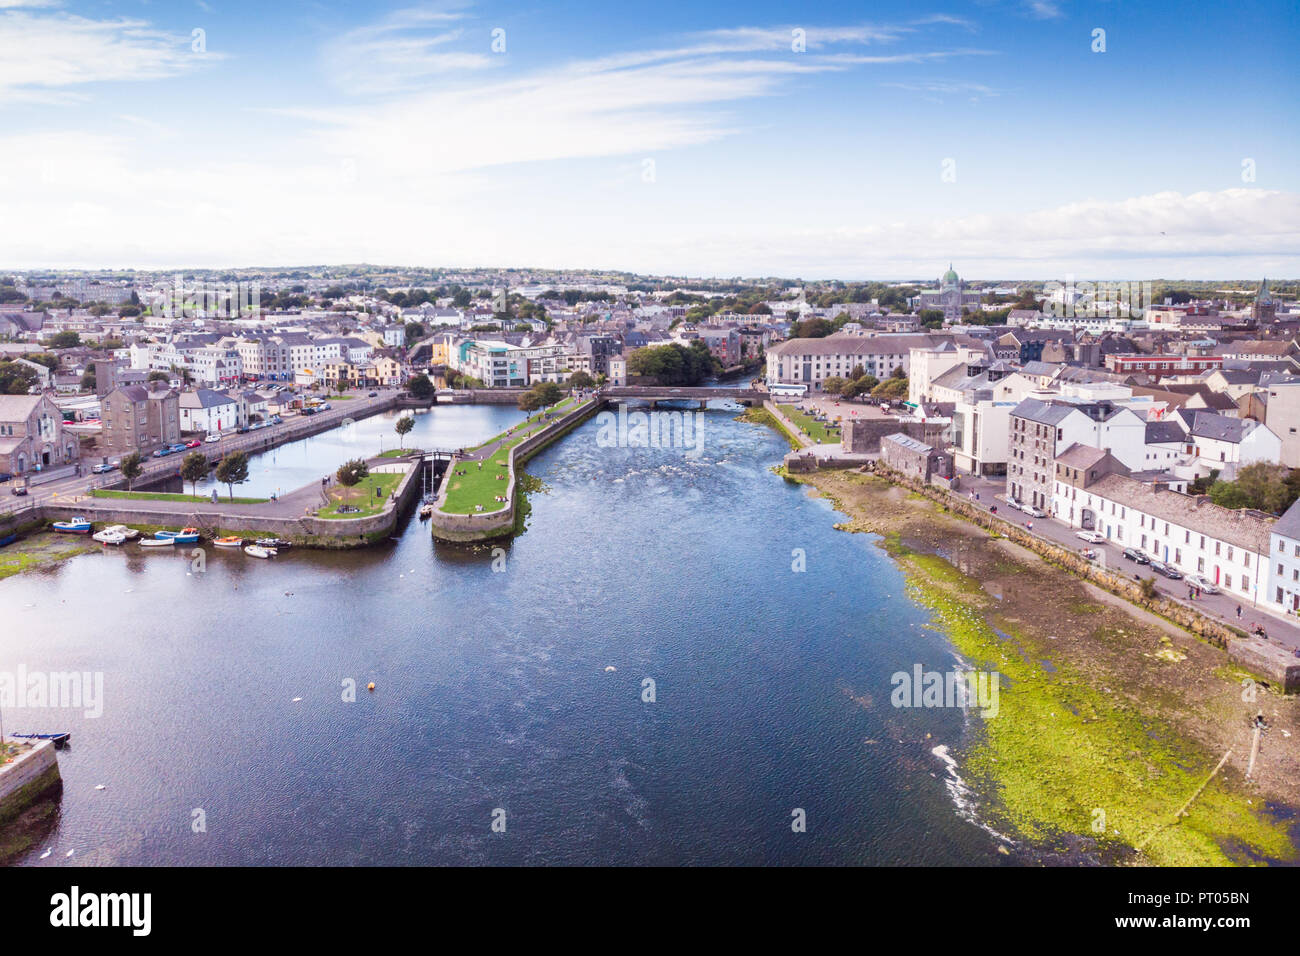 An aerial view of the River Corrib, the Claddagh Basin and the street known as The Long Walk in Galway, Ireland. - Stock Image